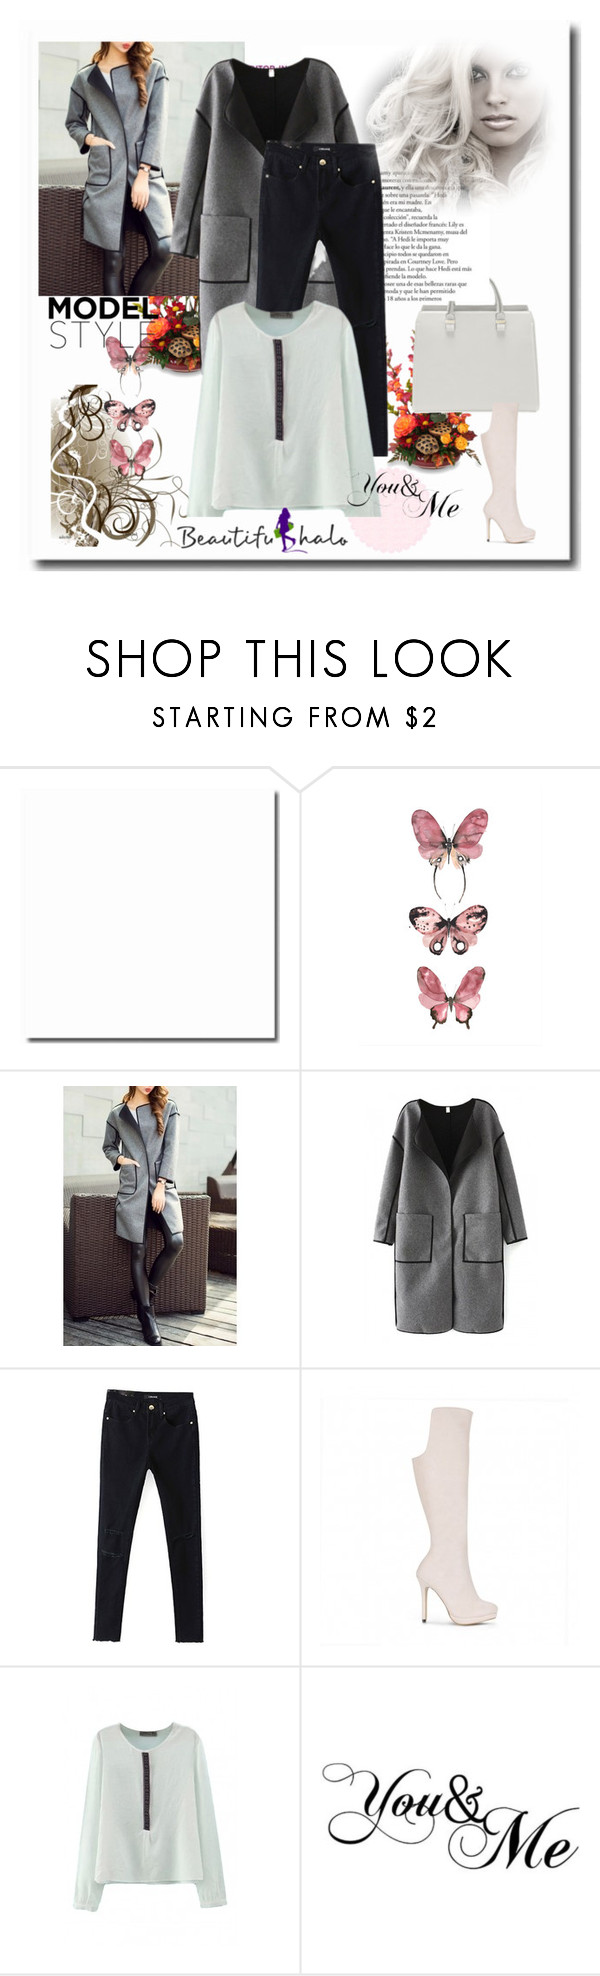 """""""Beautifulhalo 15"""" by ado-duda ❤ liked on Polyvore featuring bhalo"""